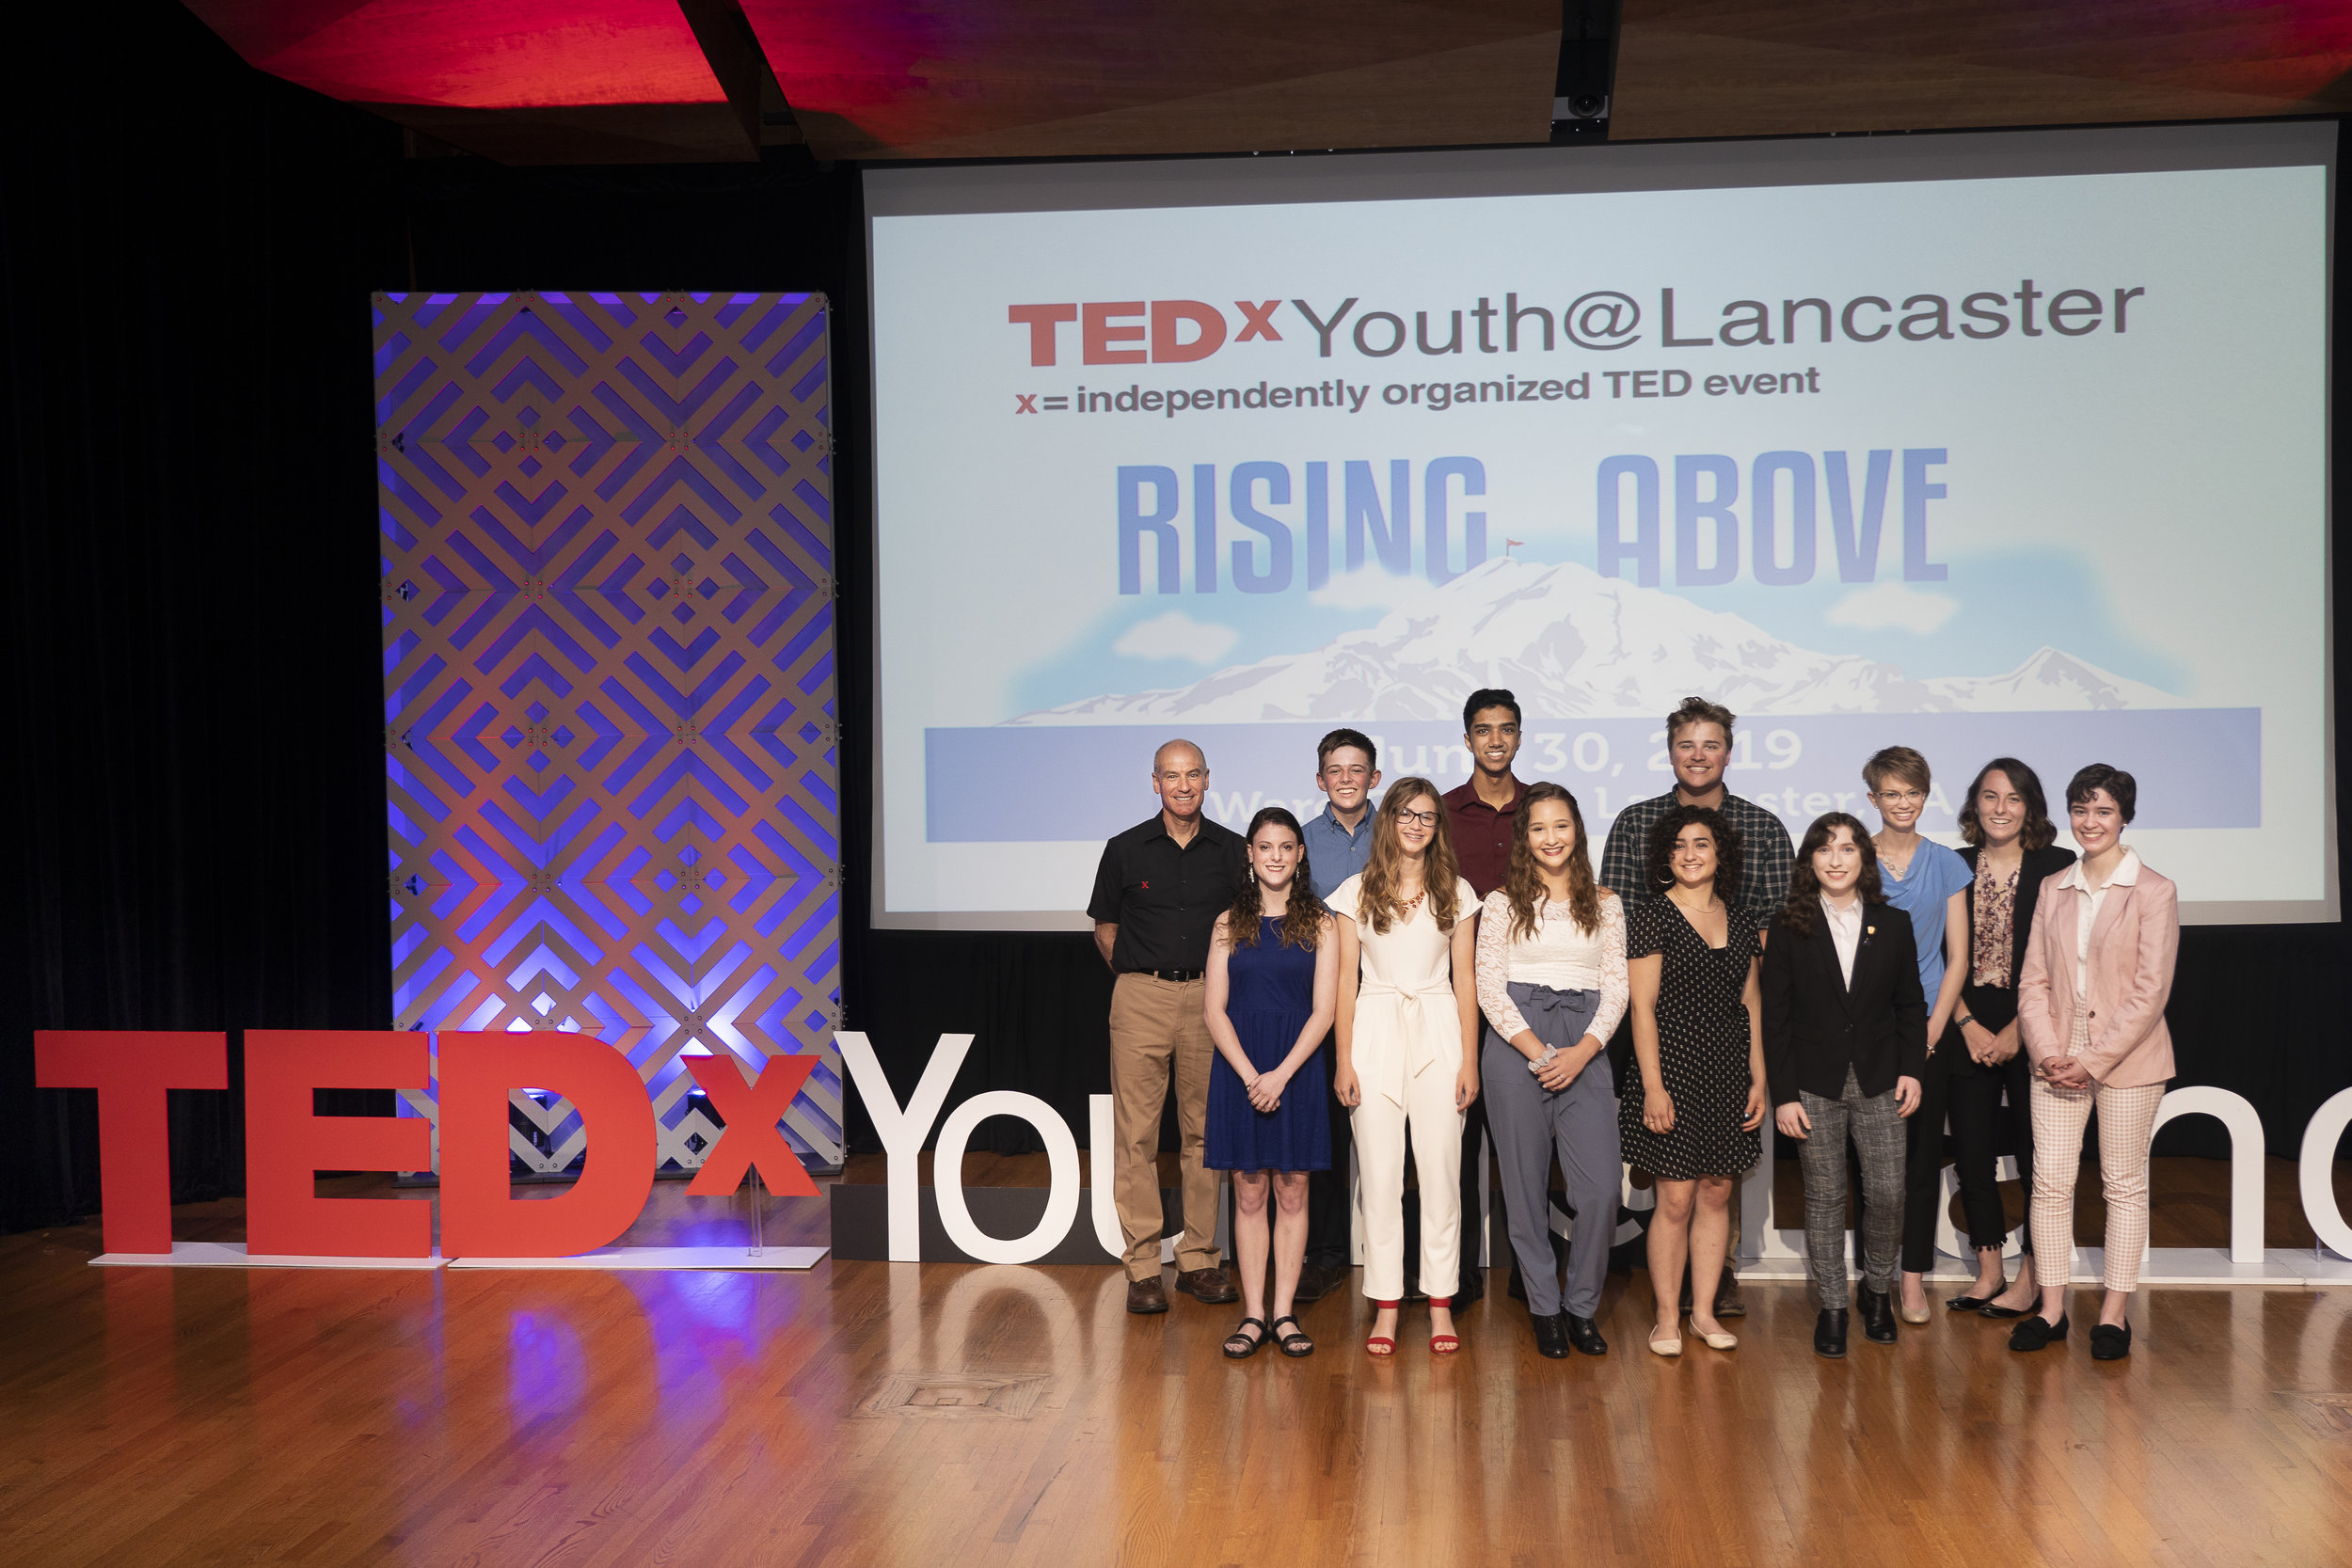 speakers-emcee-and-tedxlancaster-executive-director_48522801697_o.jpg